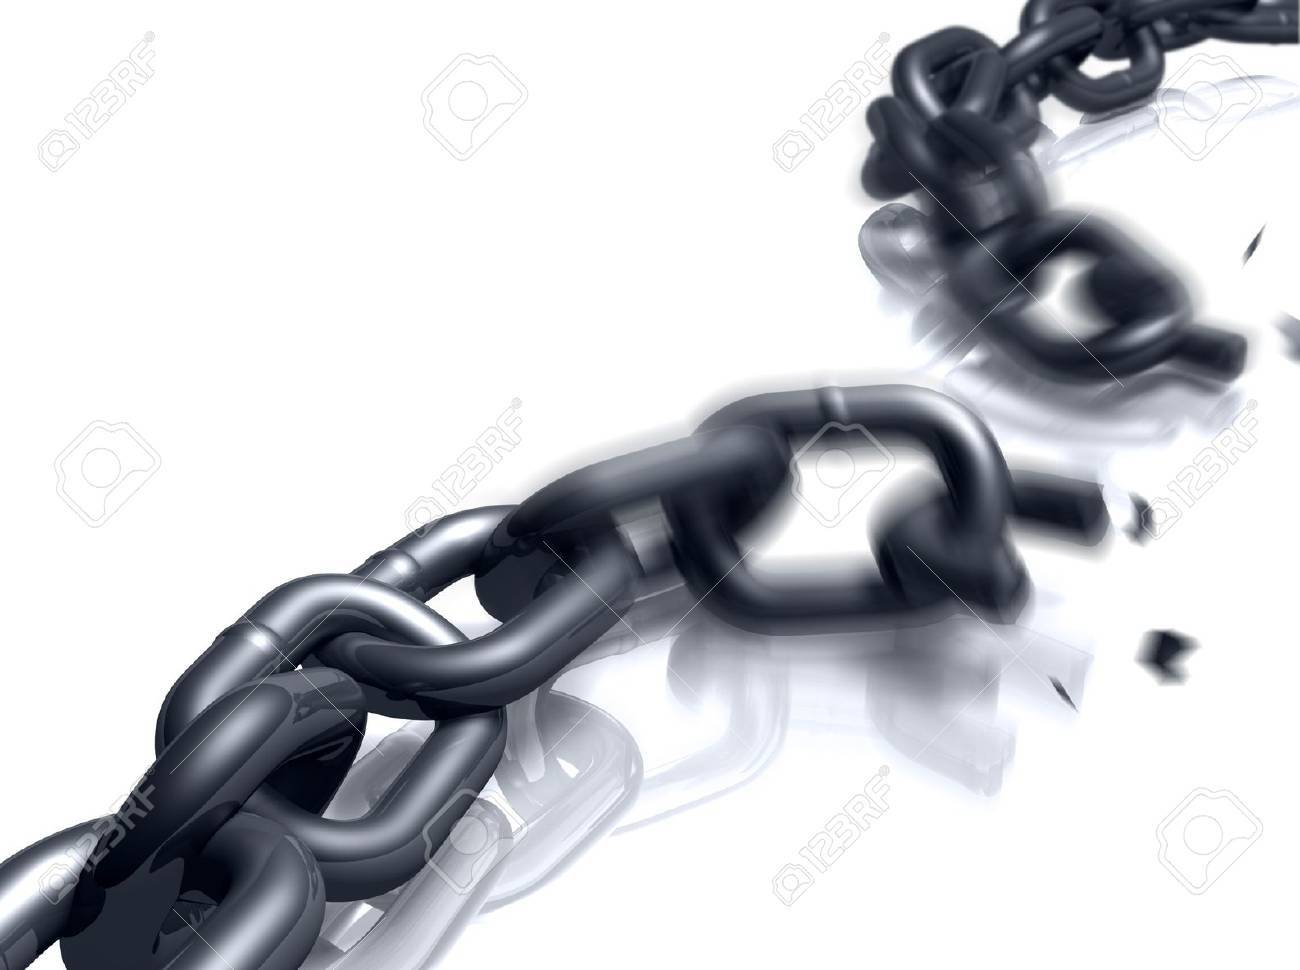 Close-up view of a heavy duty chain in the process of breaking. - 5549217